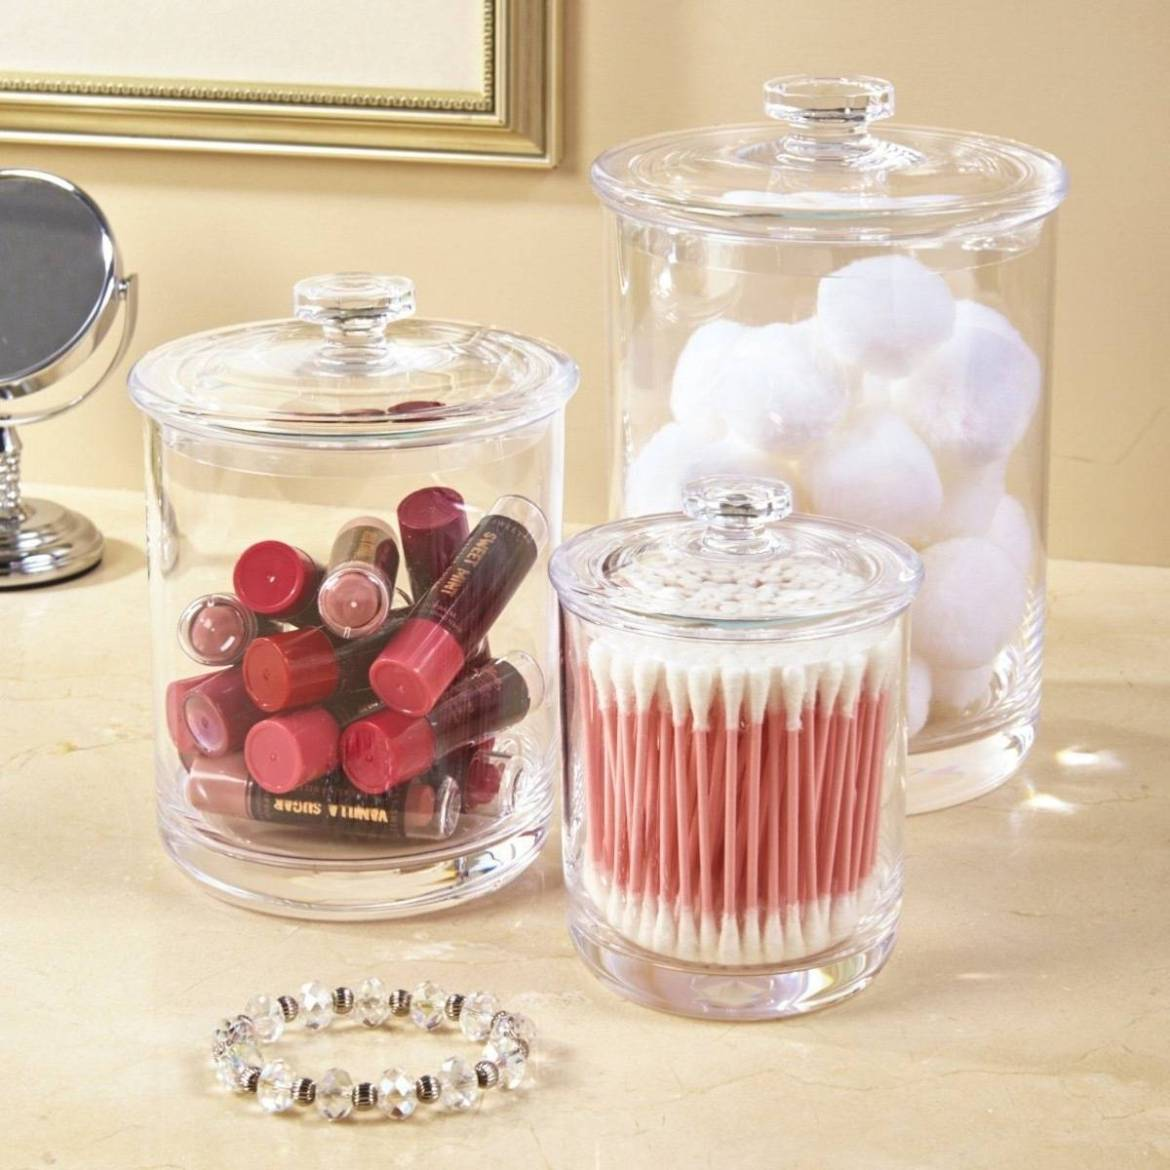 Apothecary jars | Home organization products